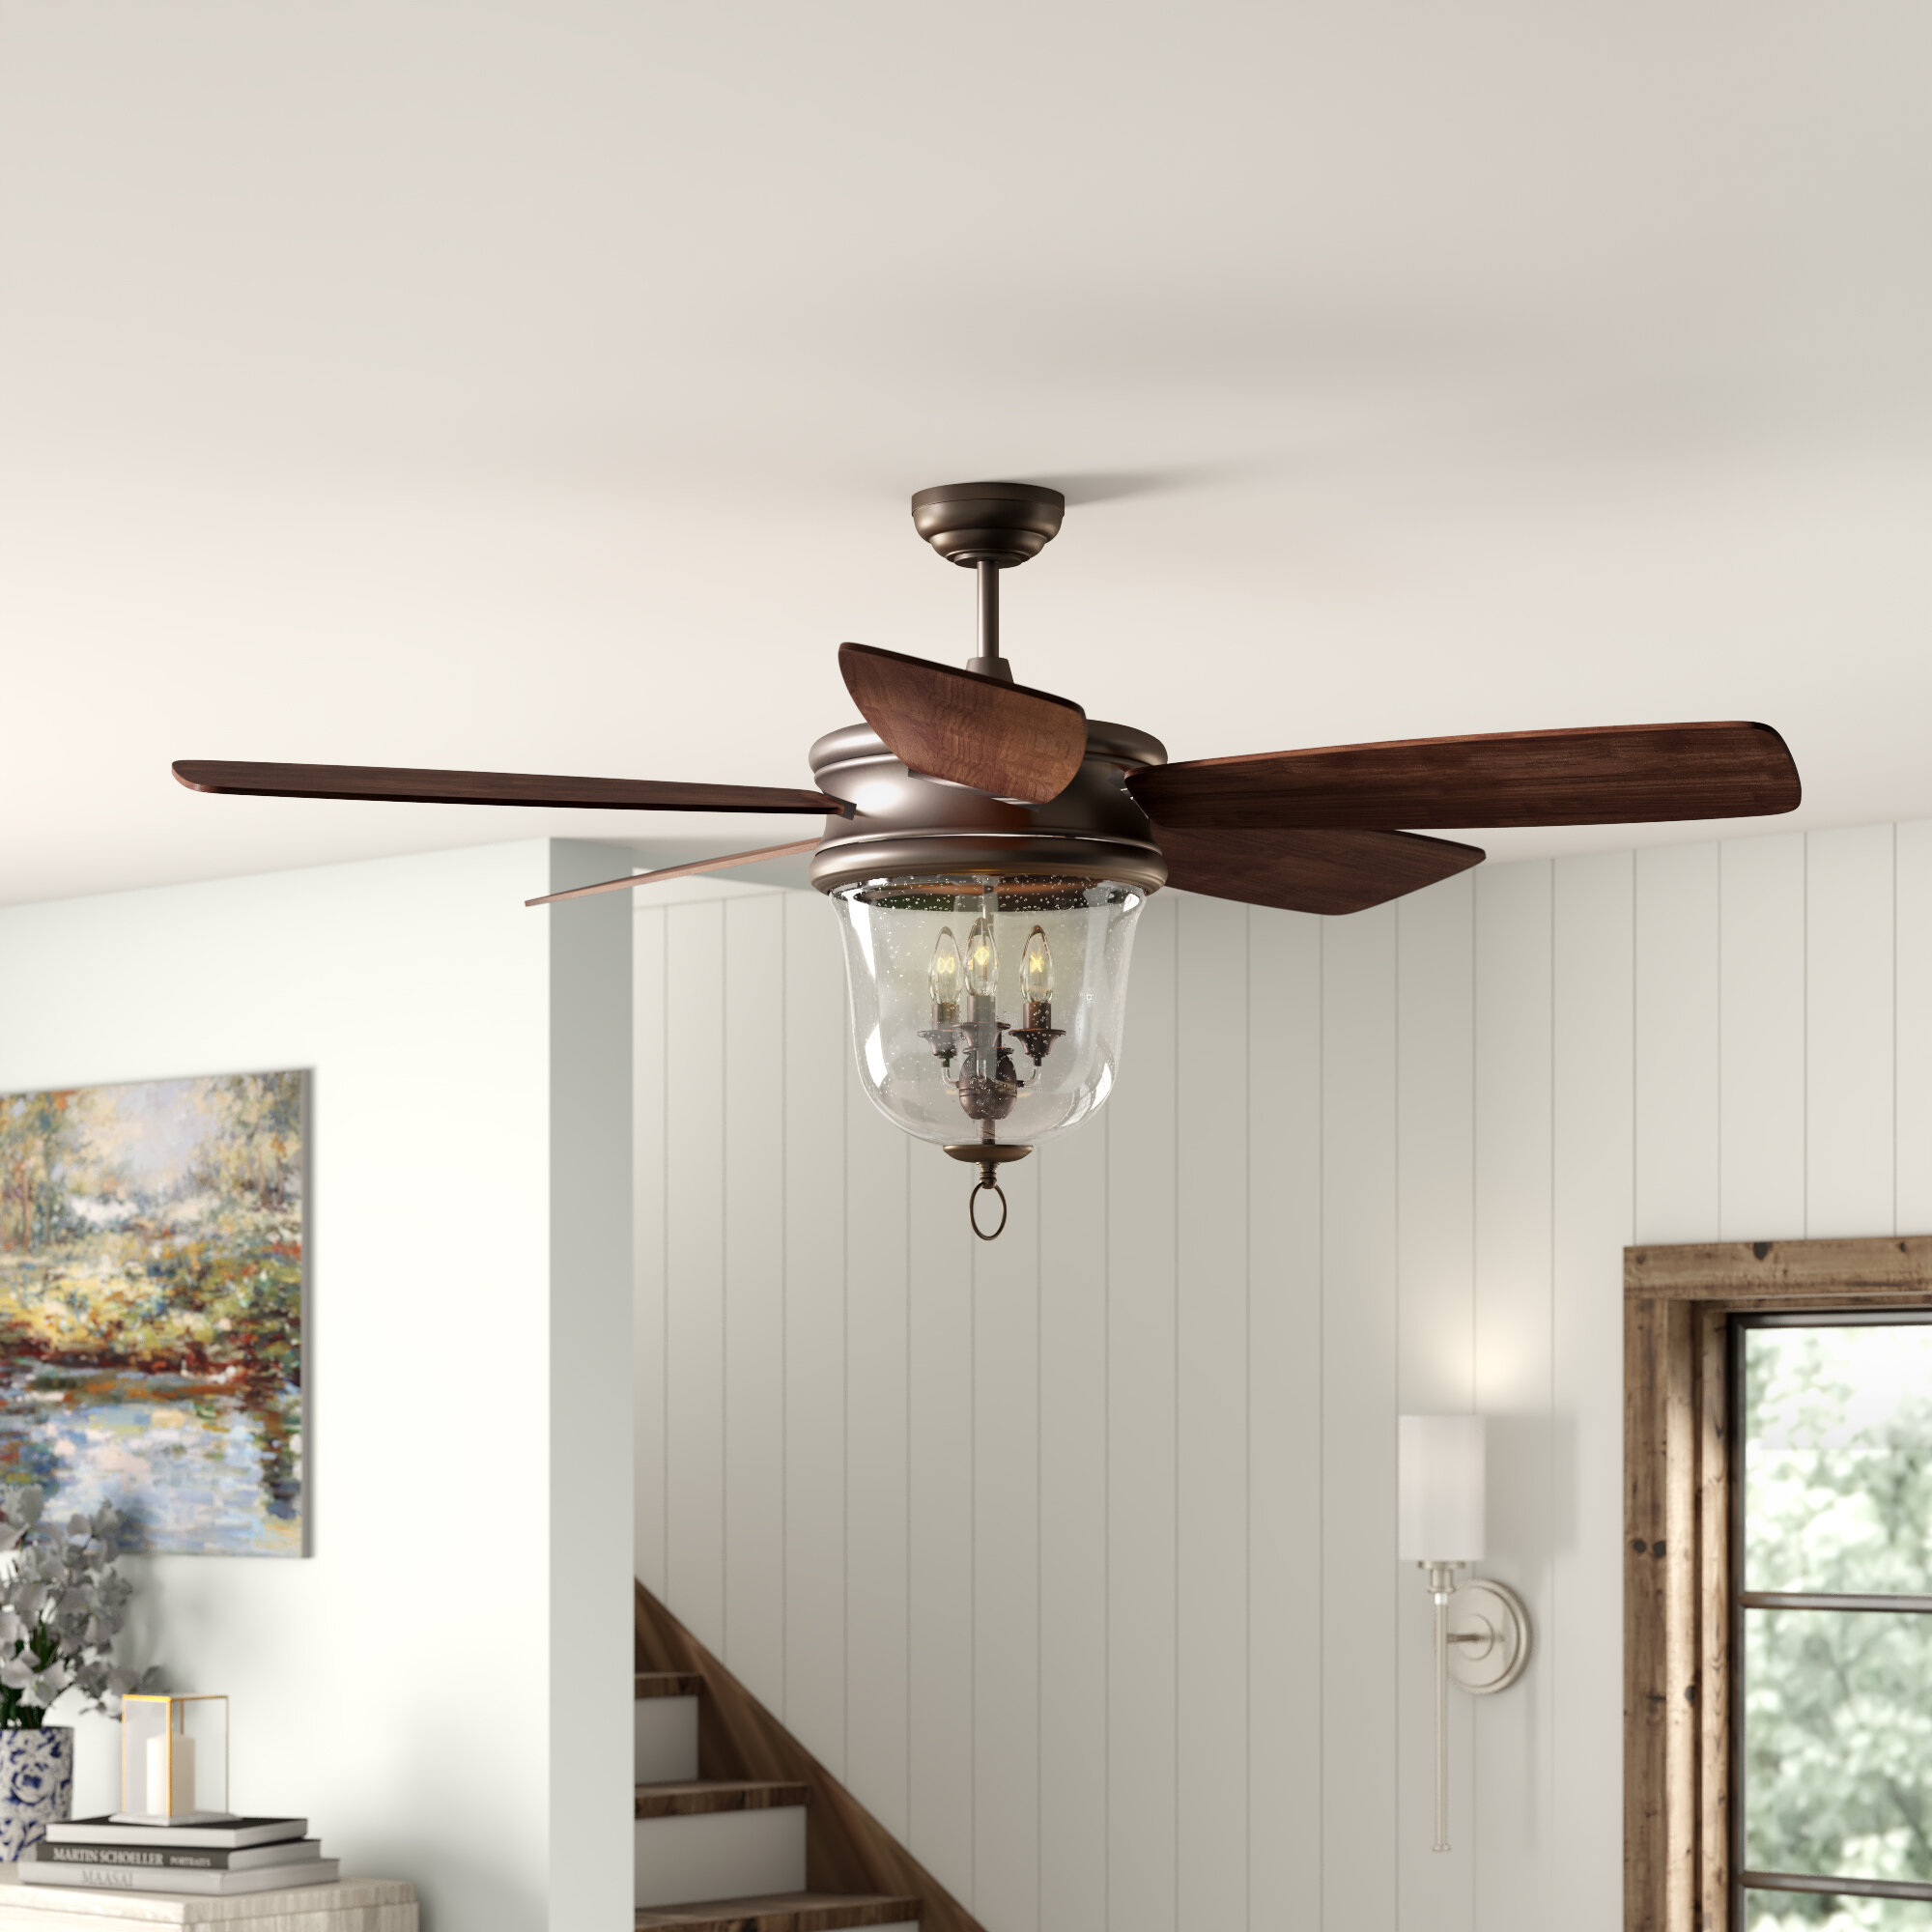 Alcott Hill 60 Collinson 5 Blade Led Standard Fan With Remote Light Kit Included Reviews Wayfair